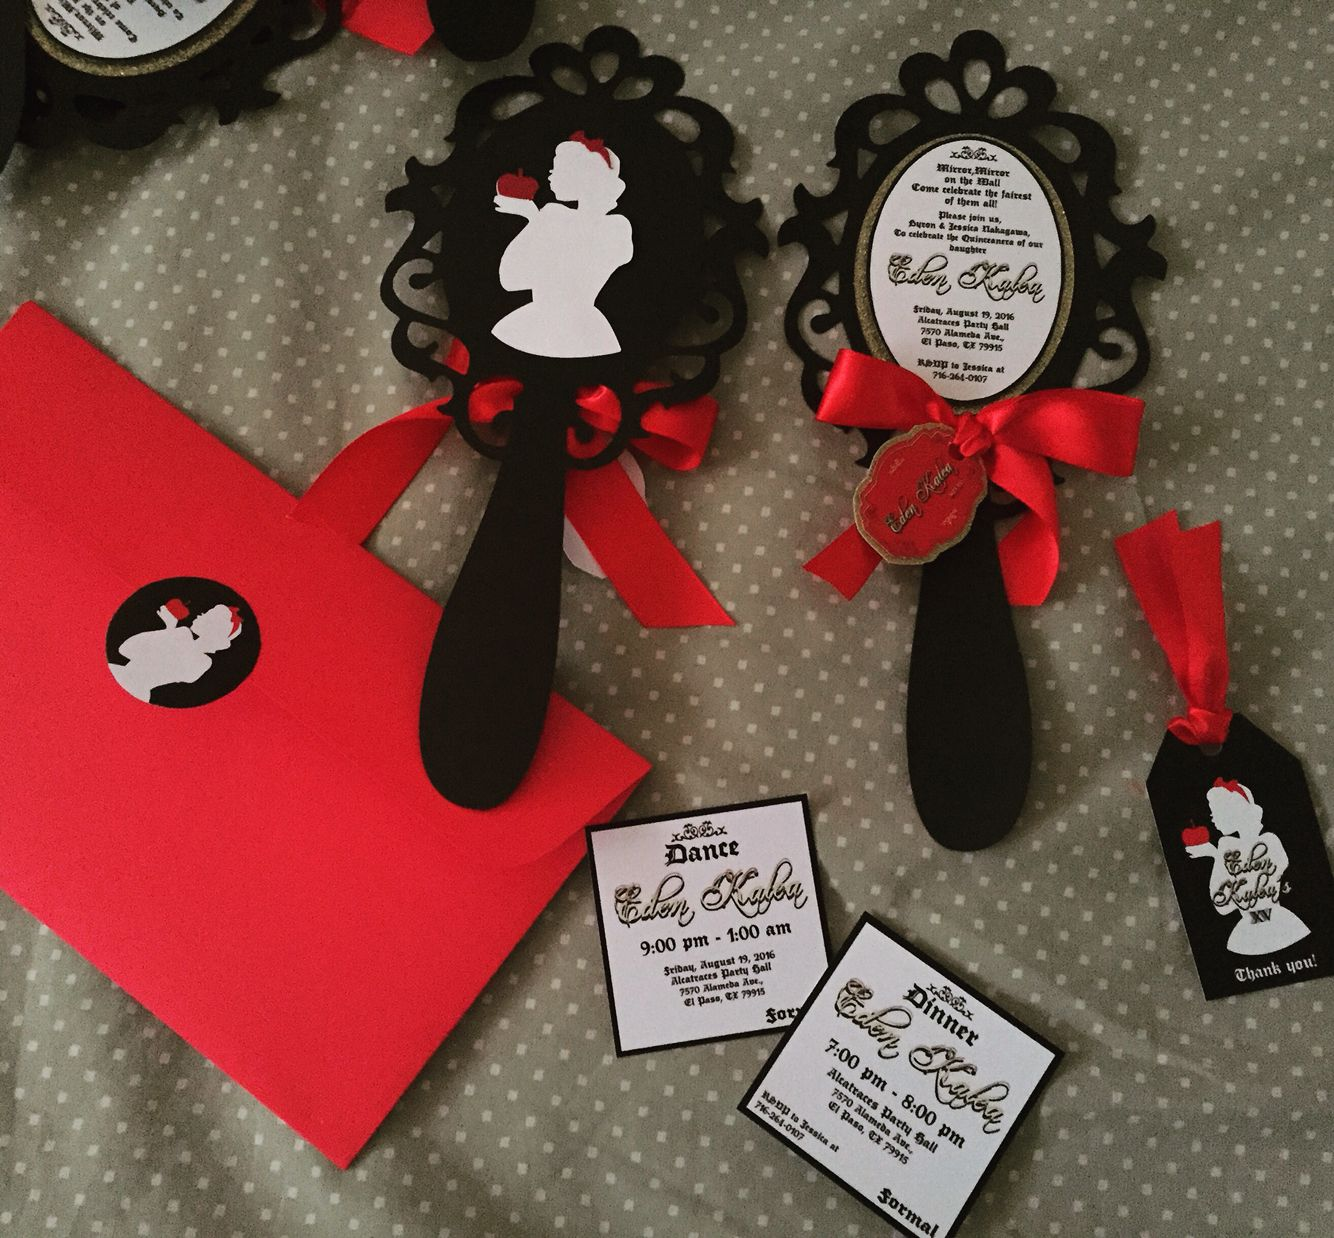 Snow White Xv by Cinderella invitations $2.5 each | Wedding ...